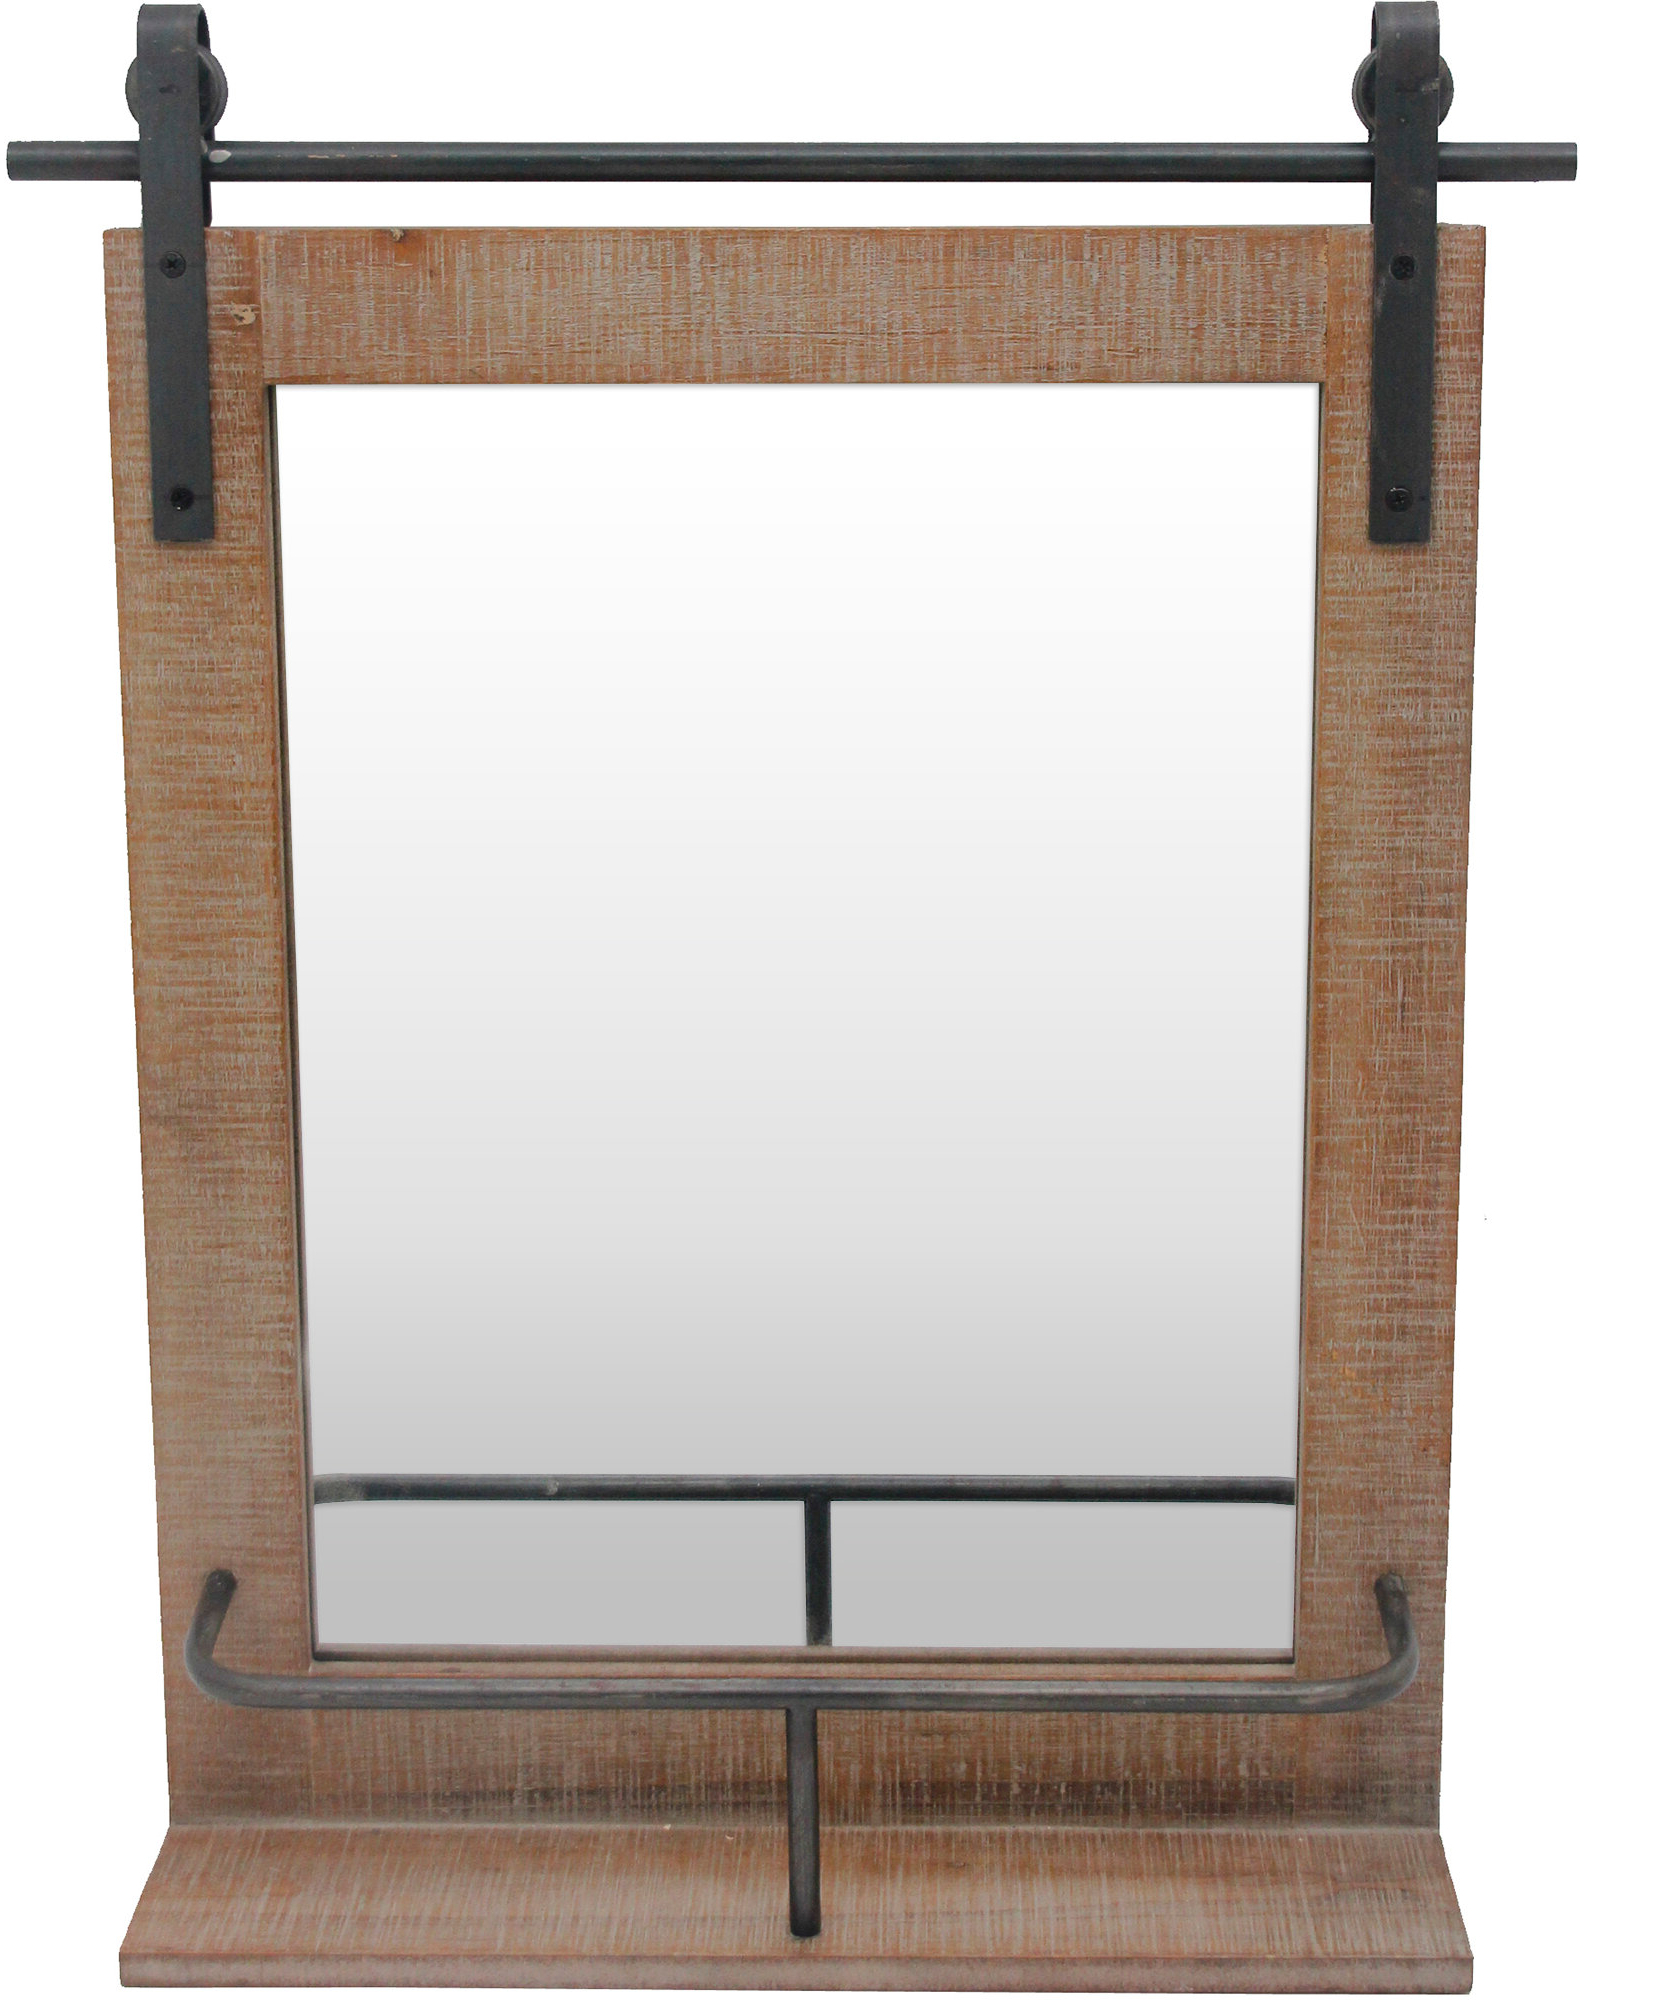 Yatendra Cottage/country Beveled Accent Mirrors For Latest Nielsen Barn Door Rustic Accent Mirror With Shelves (Gallery 15 of 20)